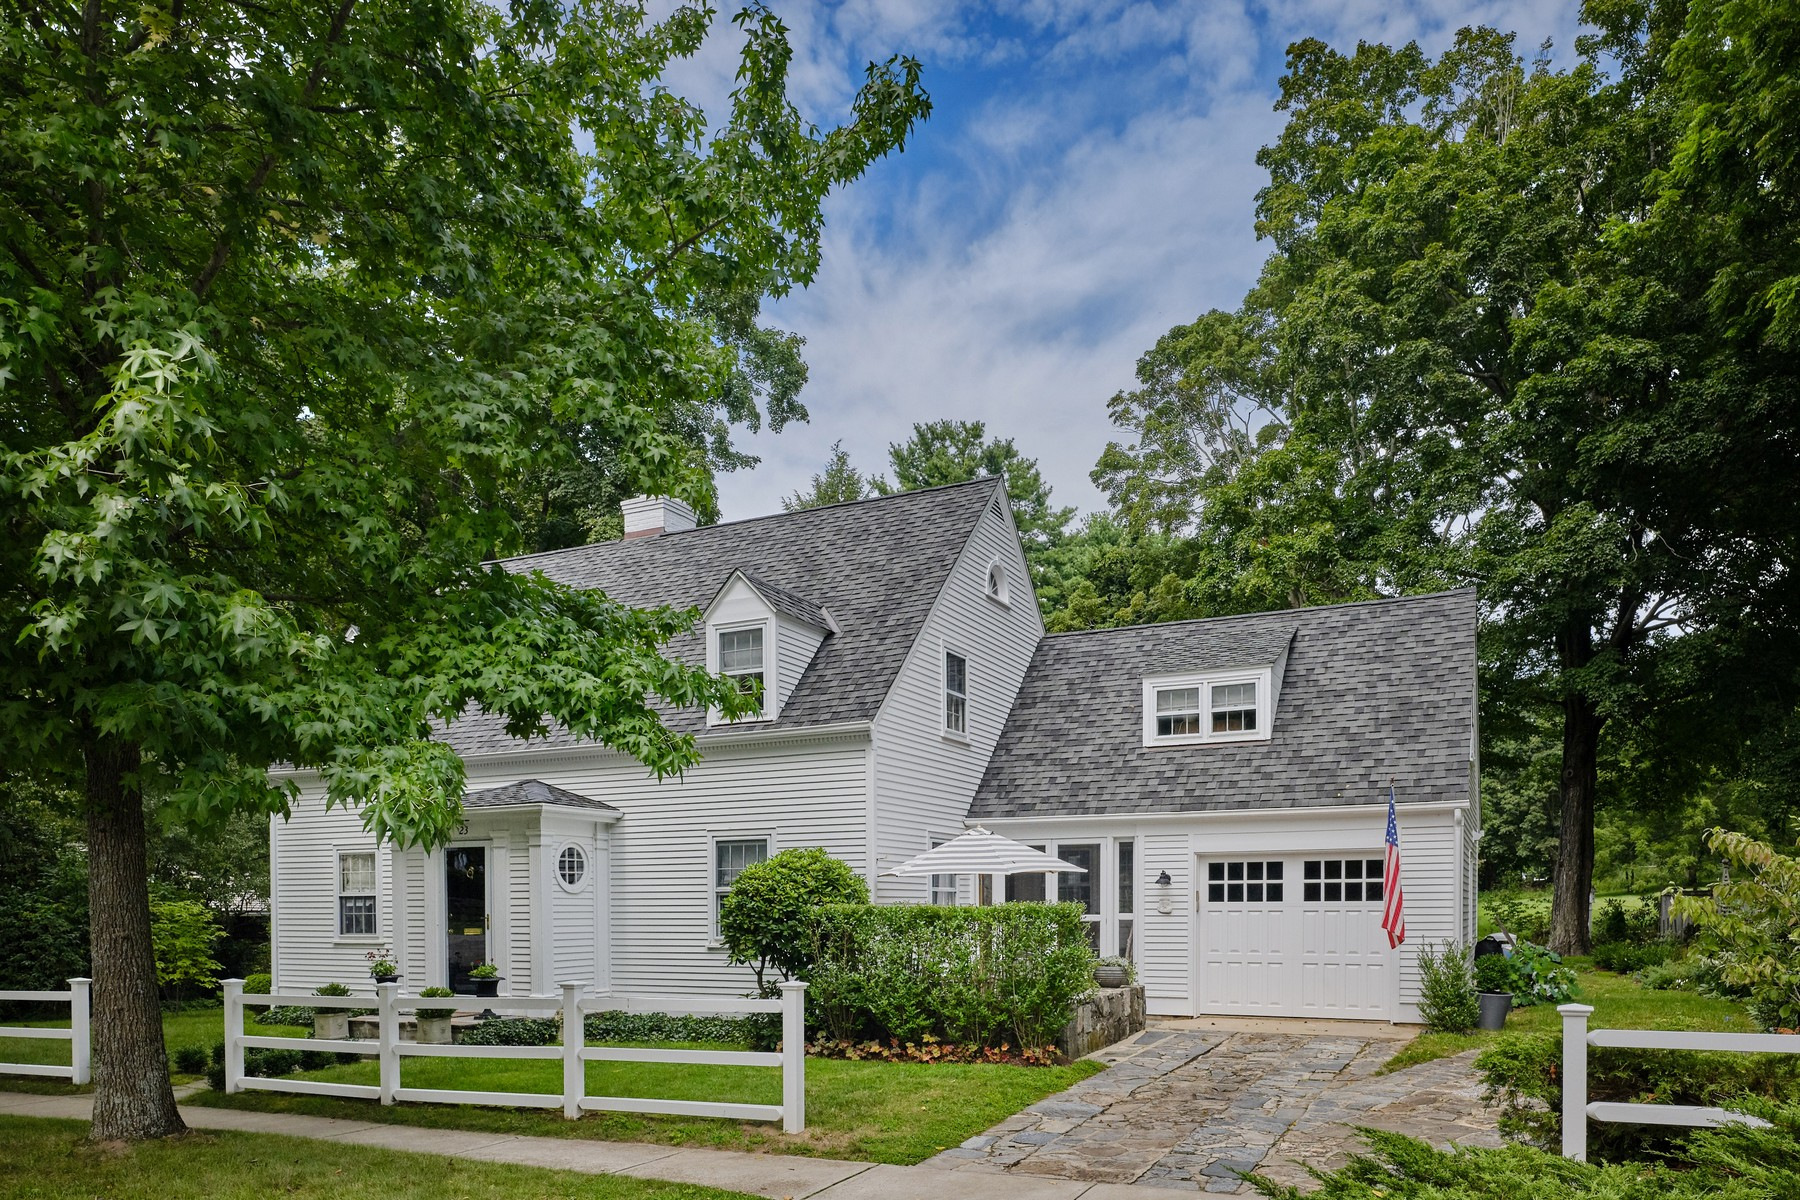 Single Family Homes for Sale at Much Admired Essex Village Cape Cod 23 West Avenue Essex, Connecticut 06426 United States